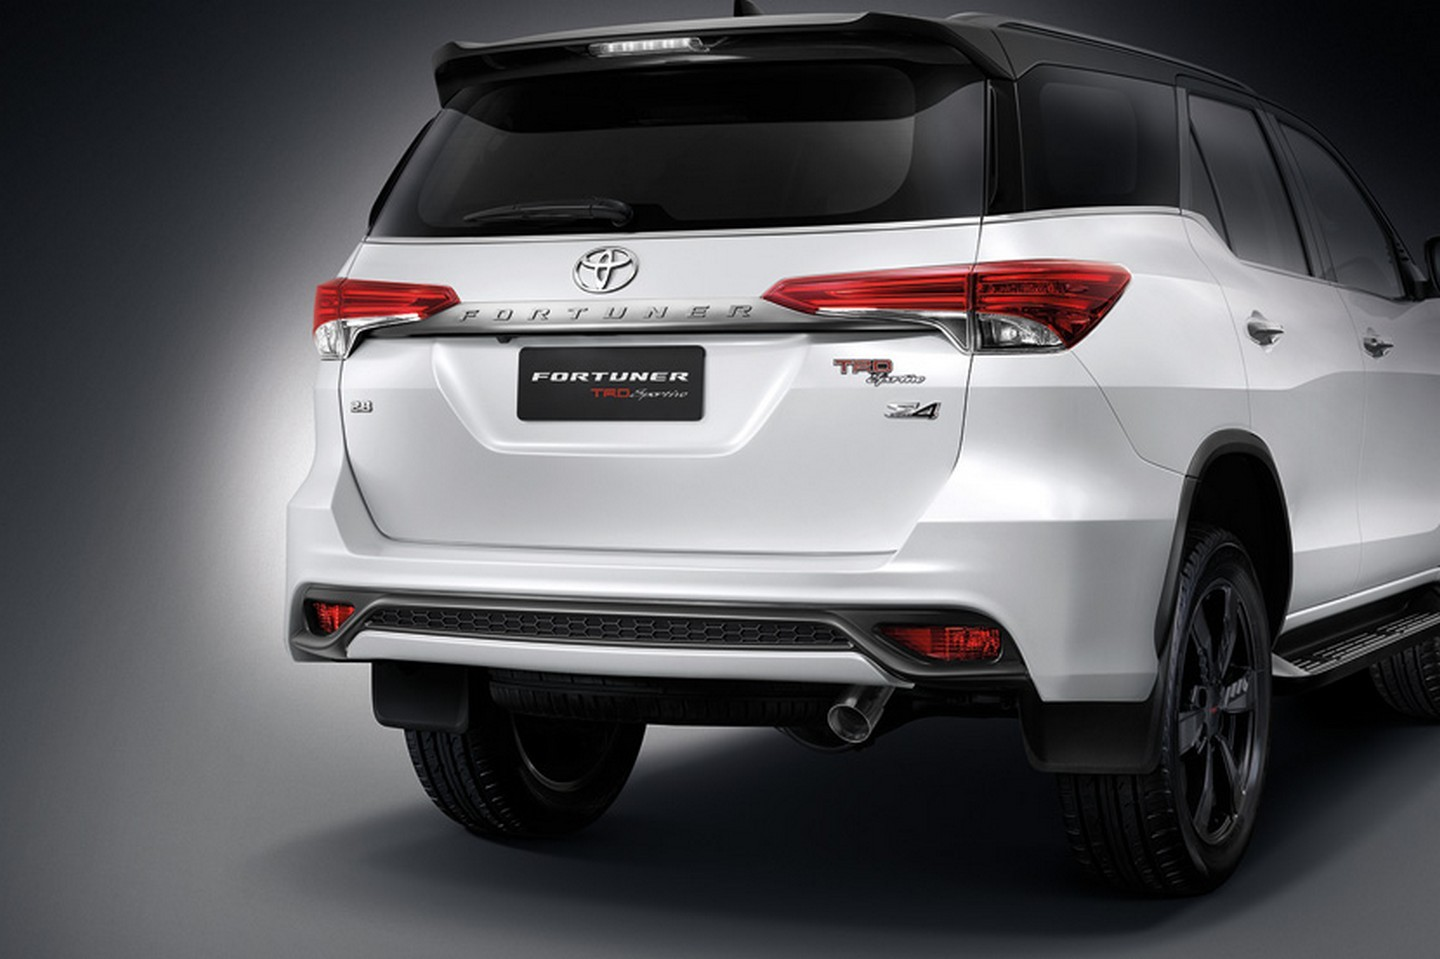 new toyota fortuner trd sportivo is a hilux suv with attitude autoevolution. Black Bedroom Furniture Sets. Home Design Ideas